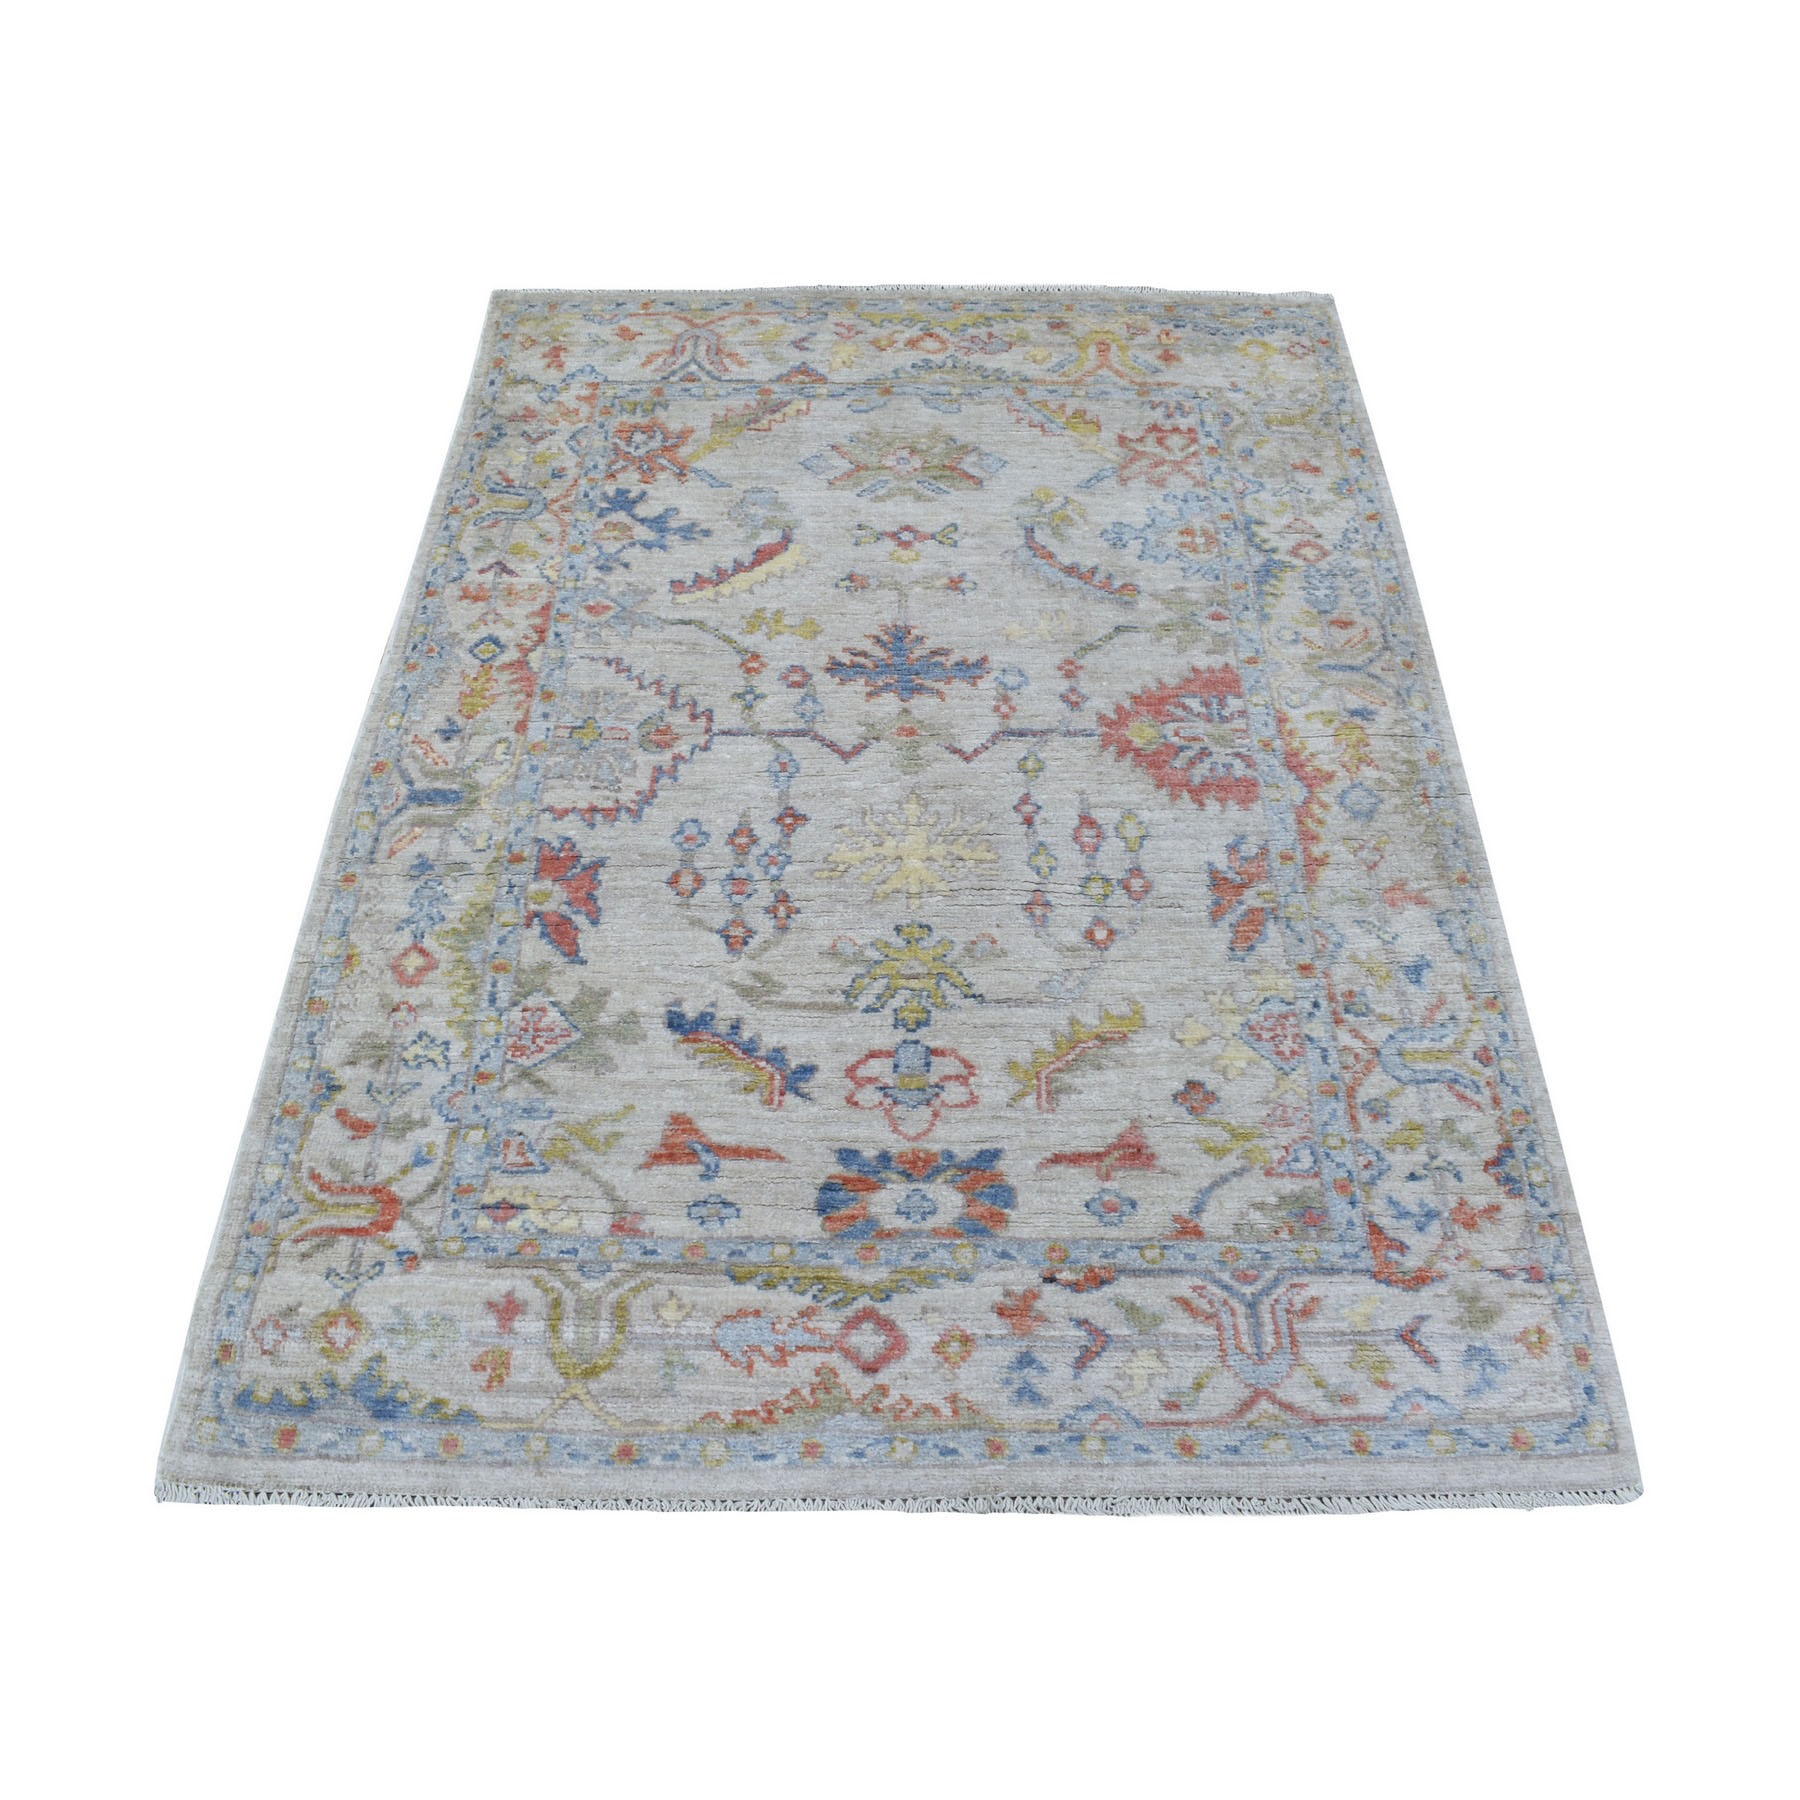 Oushak And Peshawar Rugs LUV606267